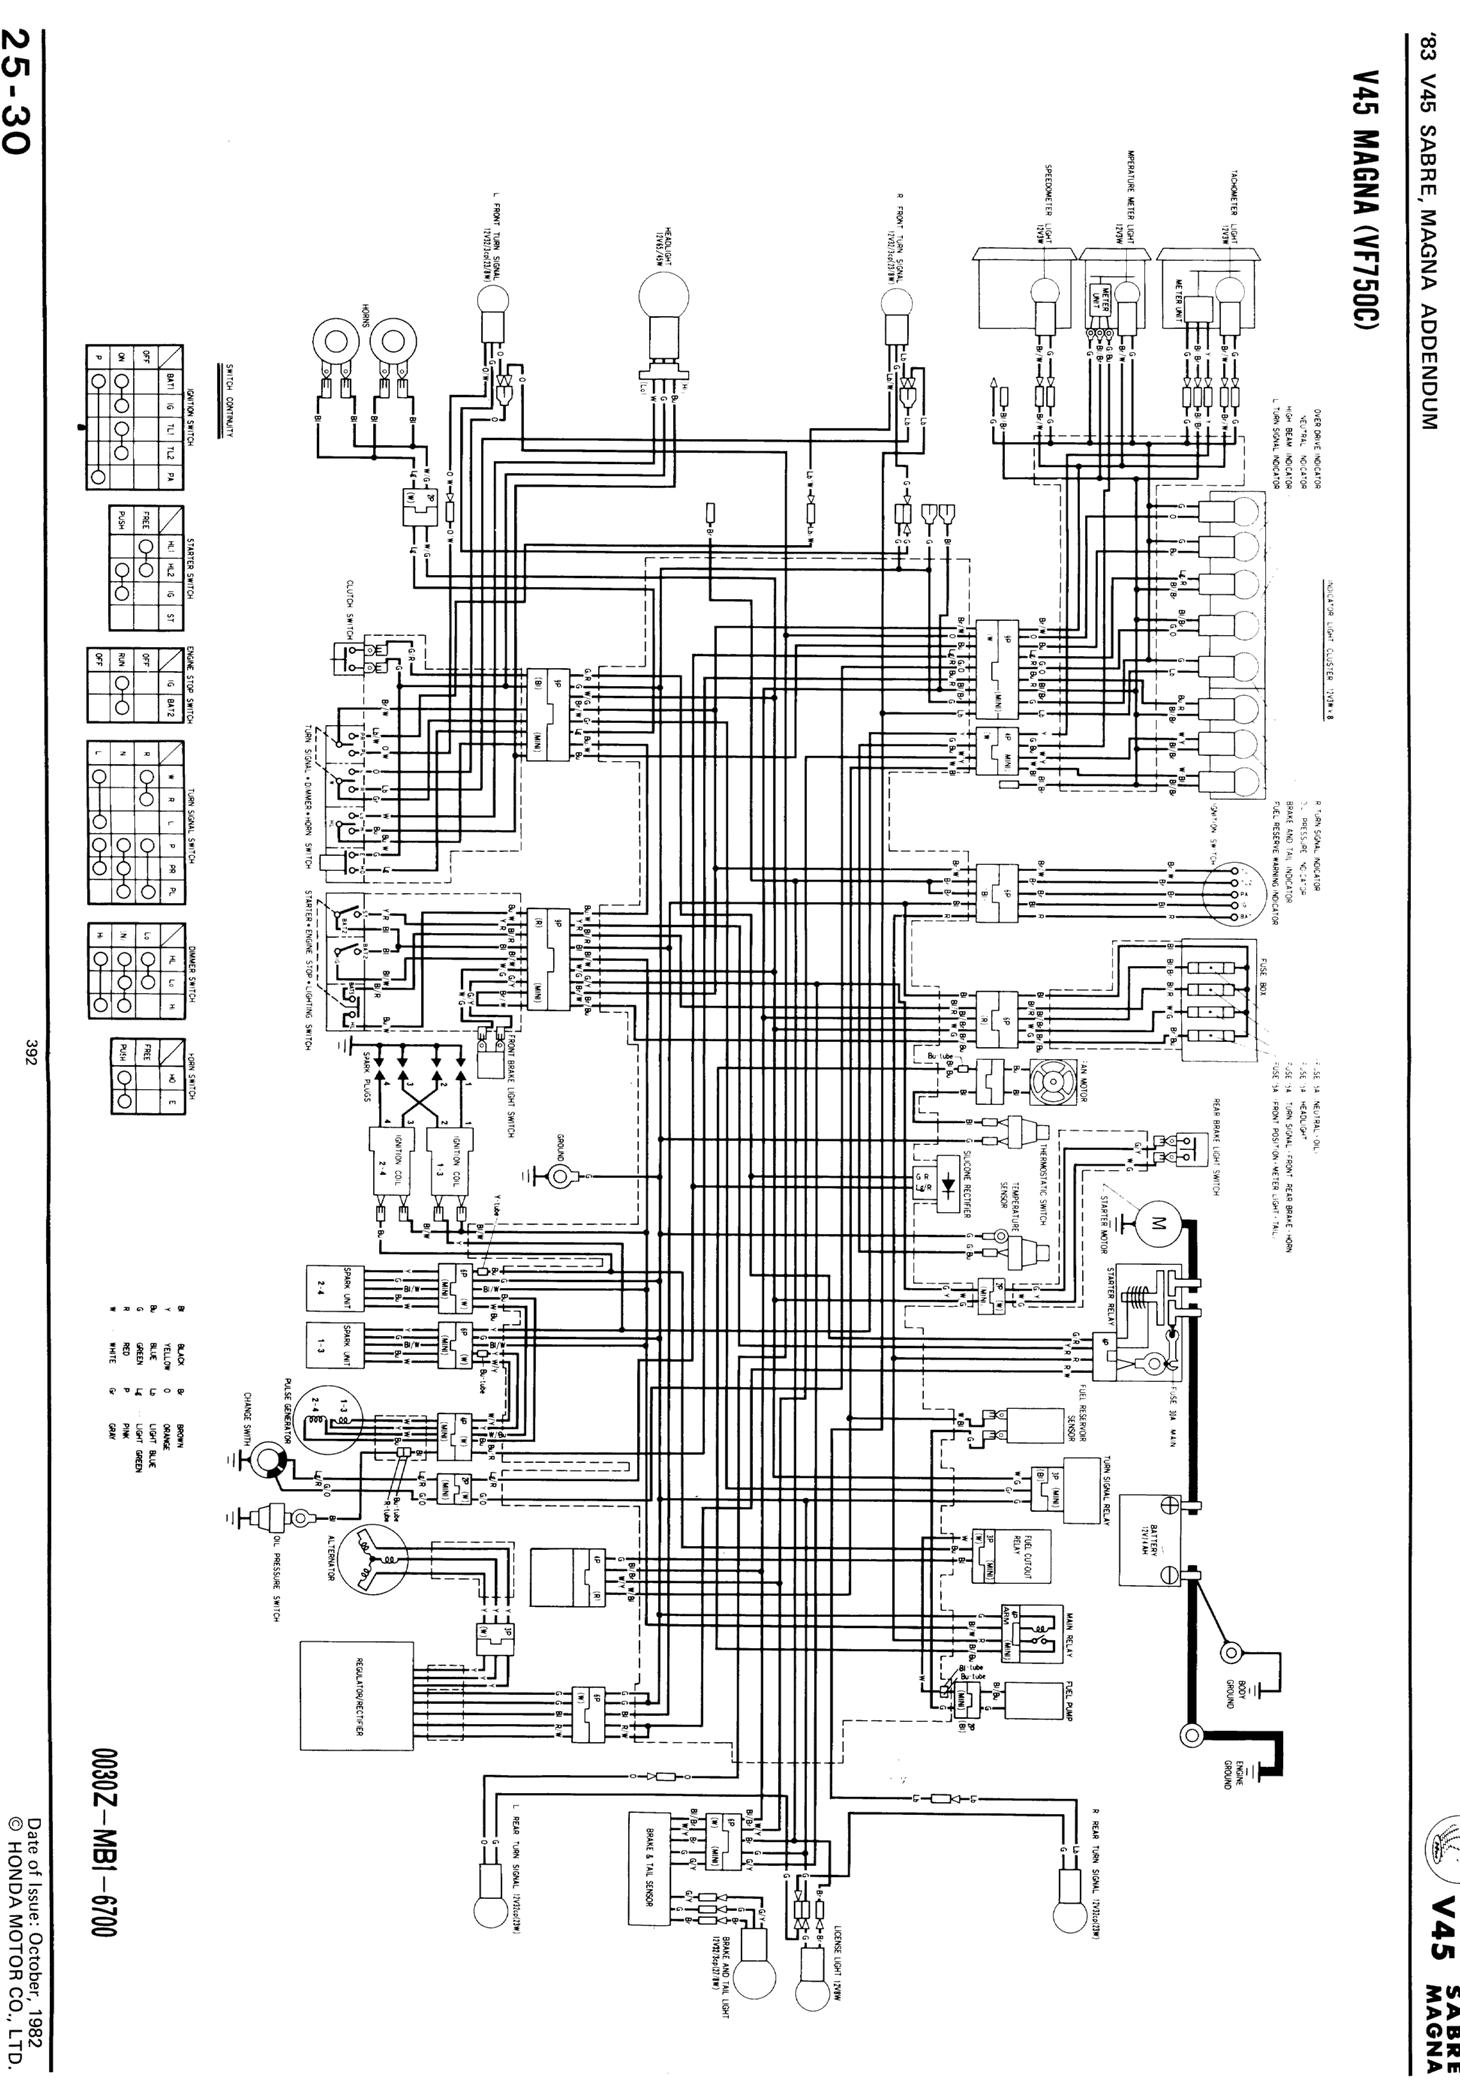 hight resolution of 85 honda vf700s wiring diagram data diagram schematic85 honda vf700s wiring diagram data wiring diagram 85